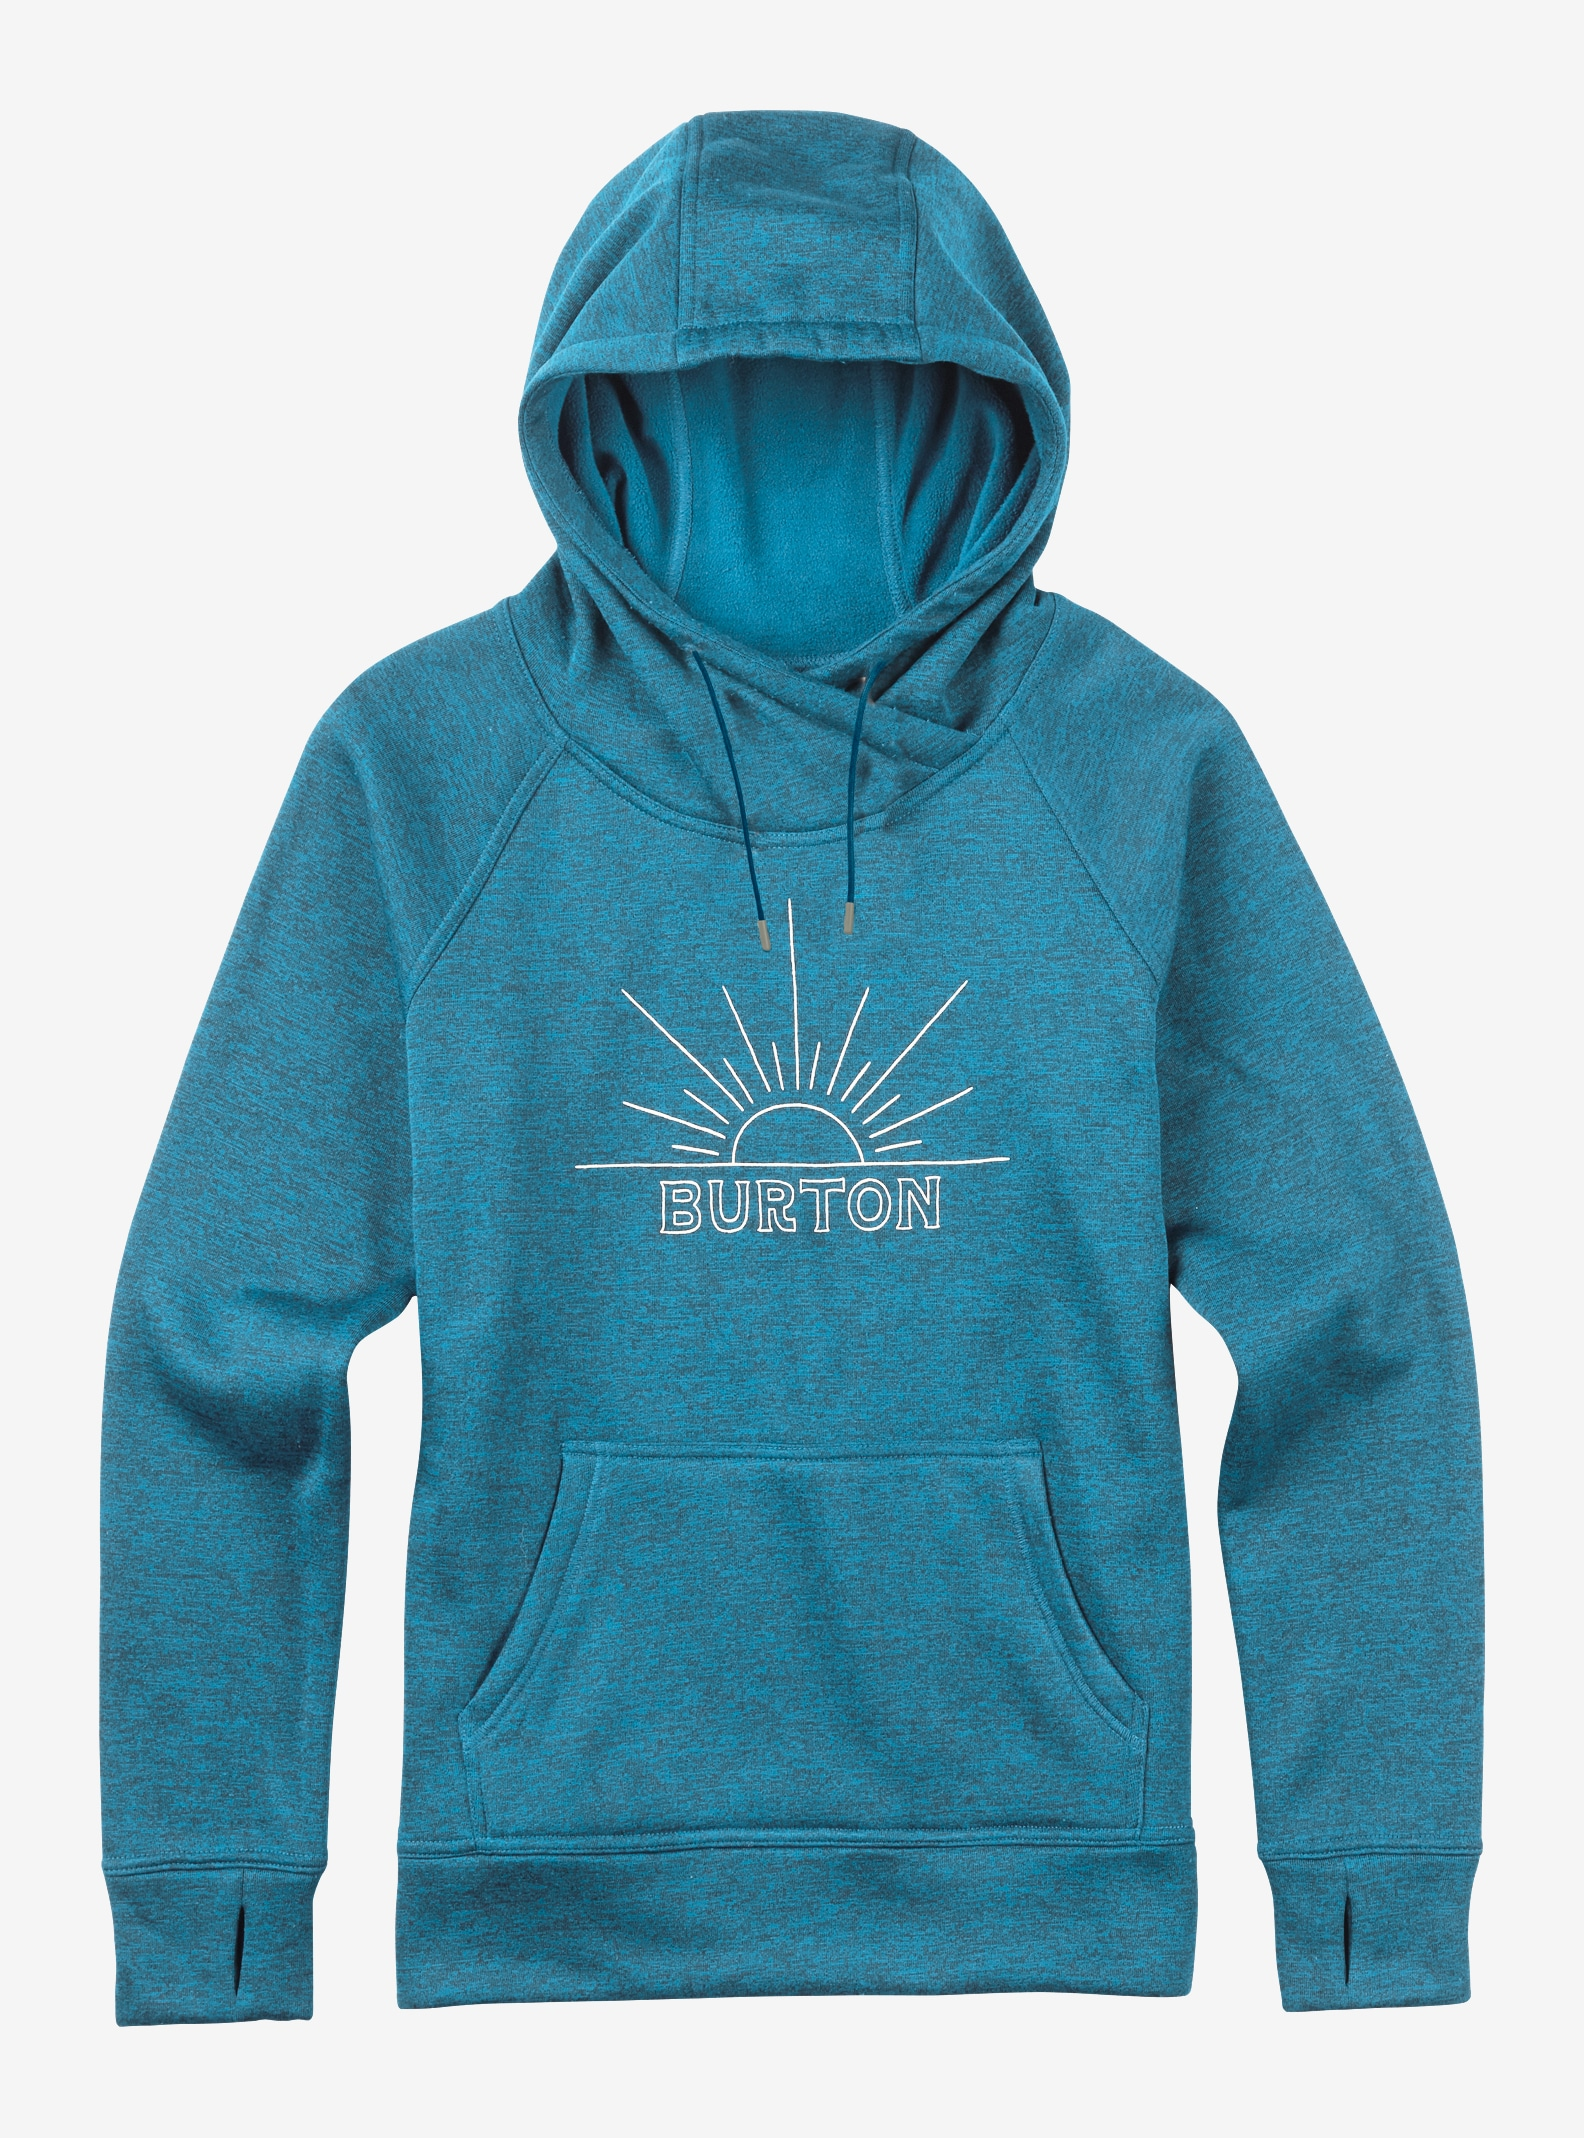 Burton Quartz Hoodie angezeigt in True Blue / Everglade Heather